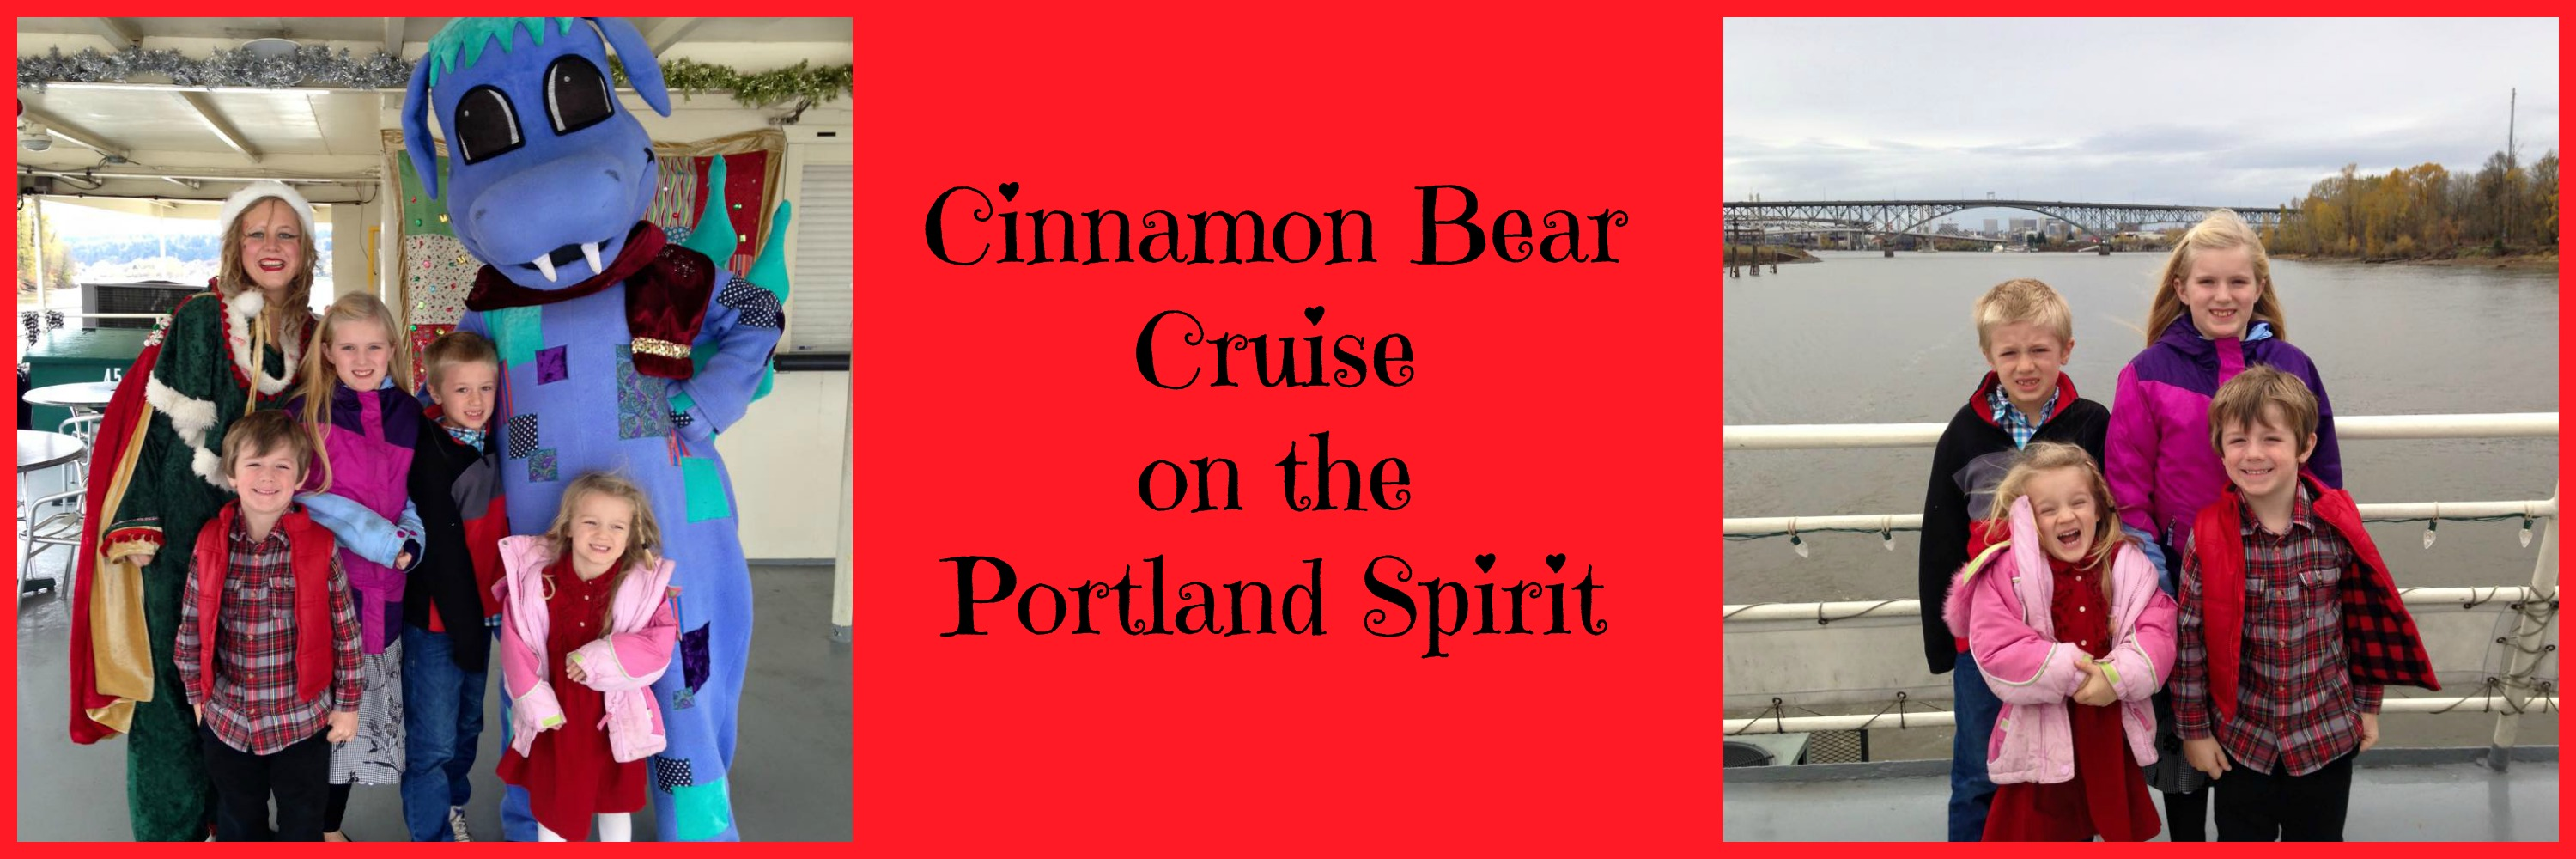 The Cinnamon Bear Cruise on the Portland Spirit: Holiday Family Tradition in PDX